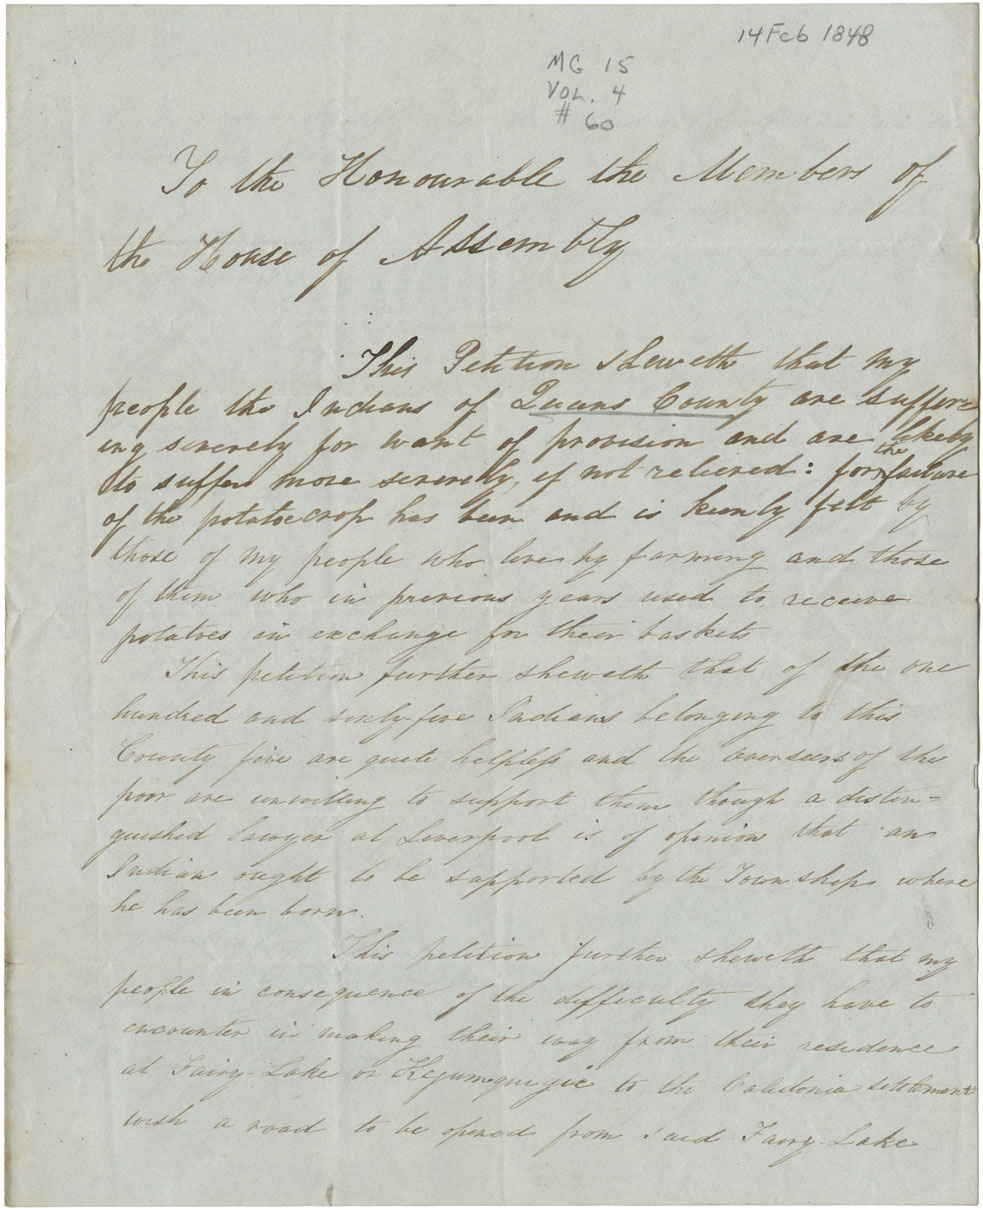 Petition of Mi'kmaq chief, Louis Luxy, for relief of Mi'kmaq near Queens County.